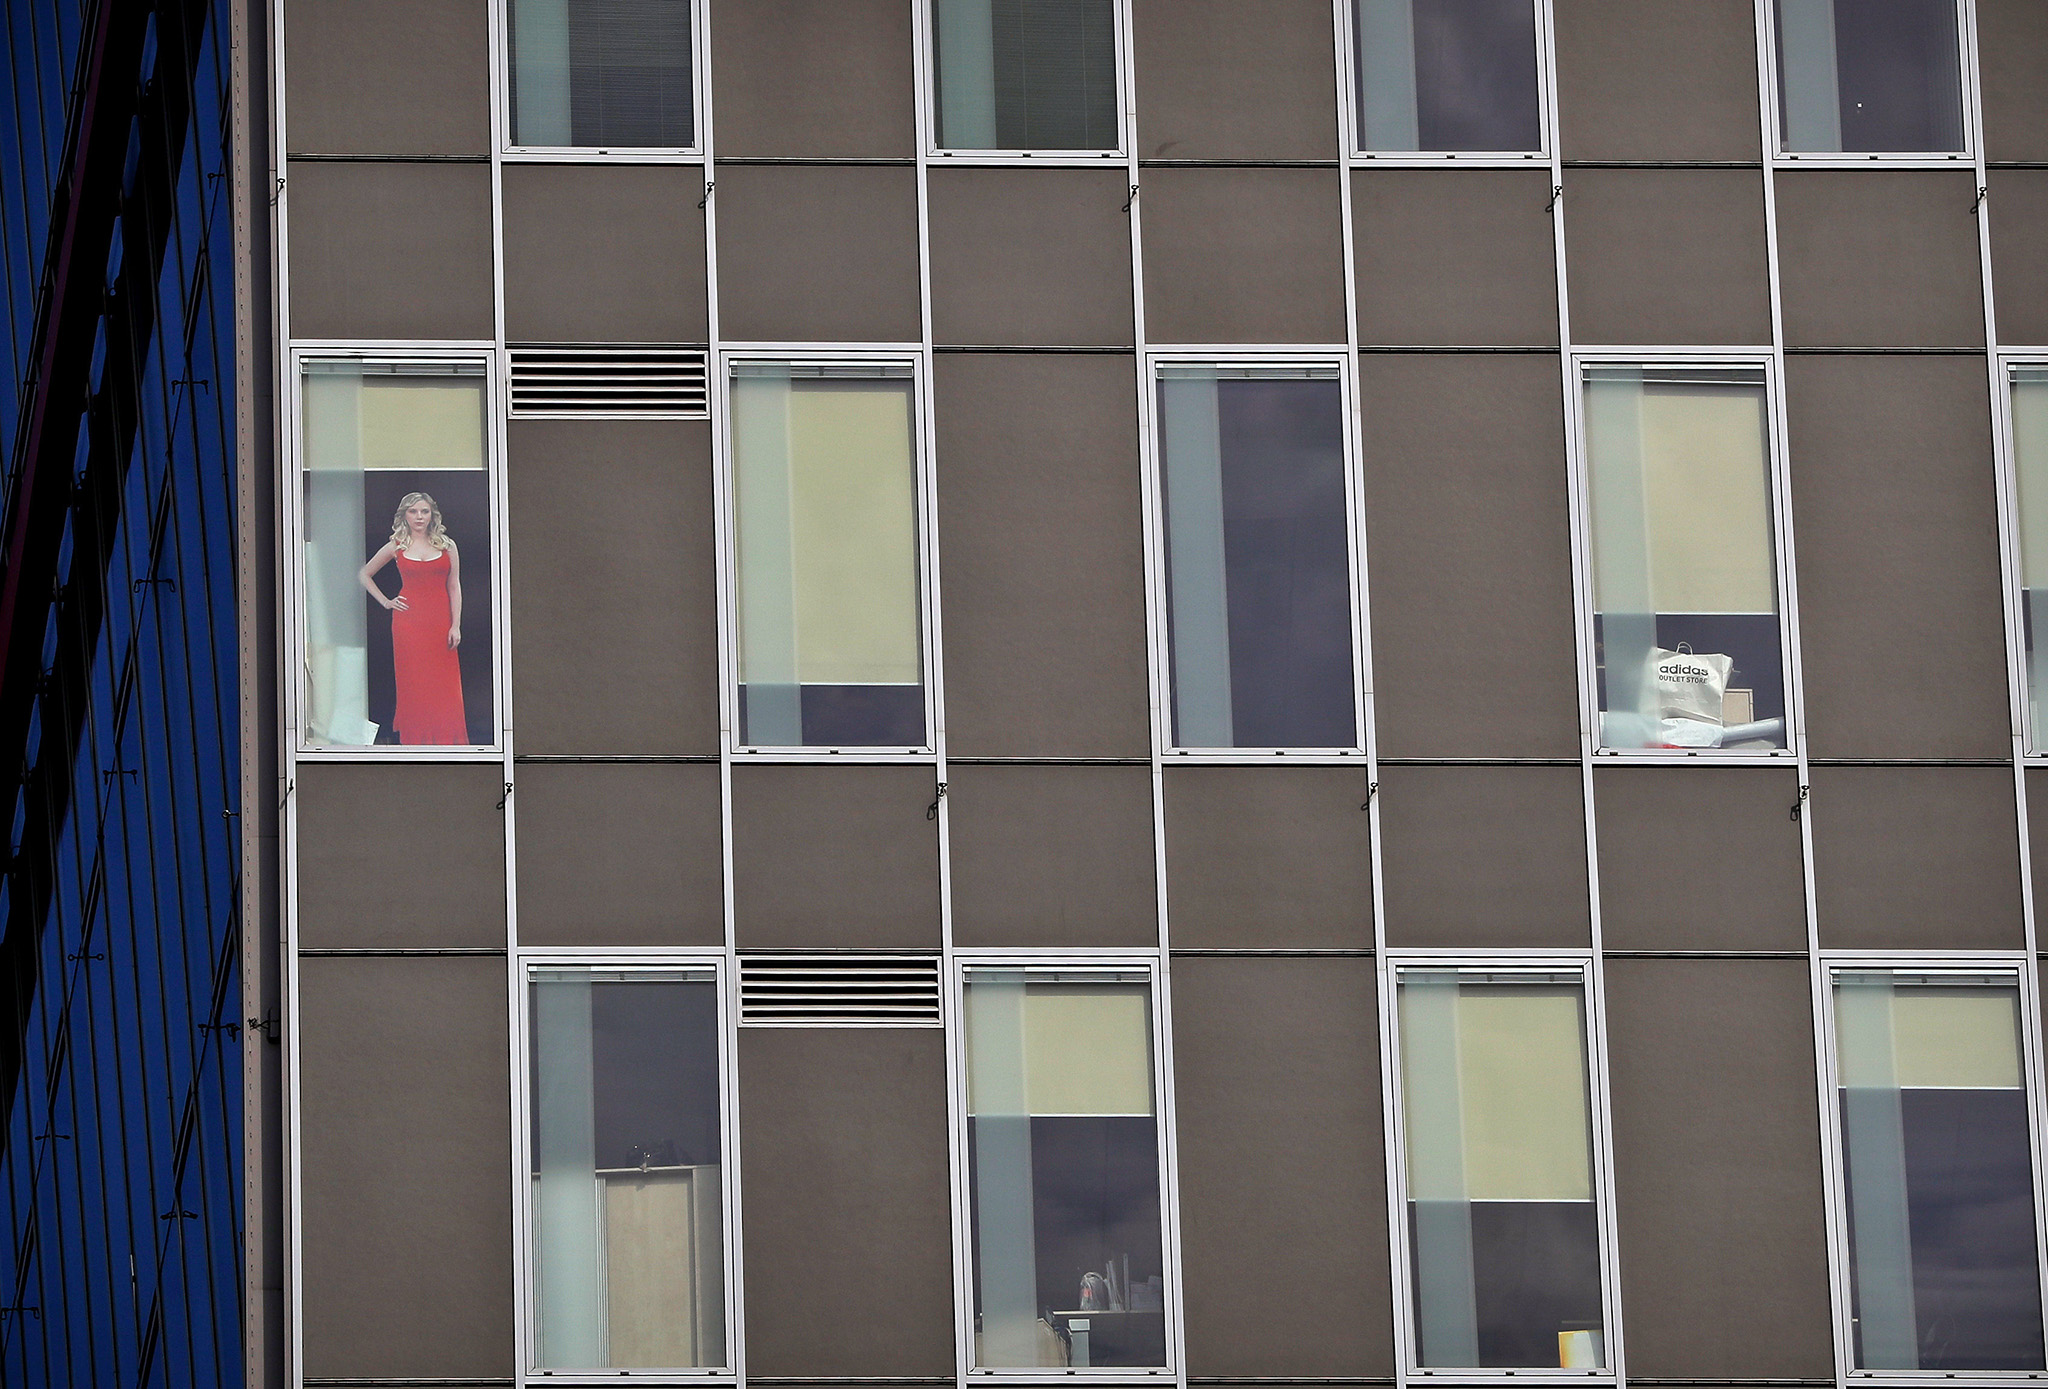 A large cardboard depiction of a woman is placed in one of the windows of an office building in Bucharest, Romania, Thursday, Sept. 15, 2016. (AP Photo/Vadim Ghirda)